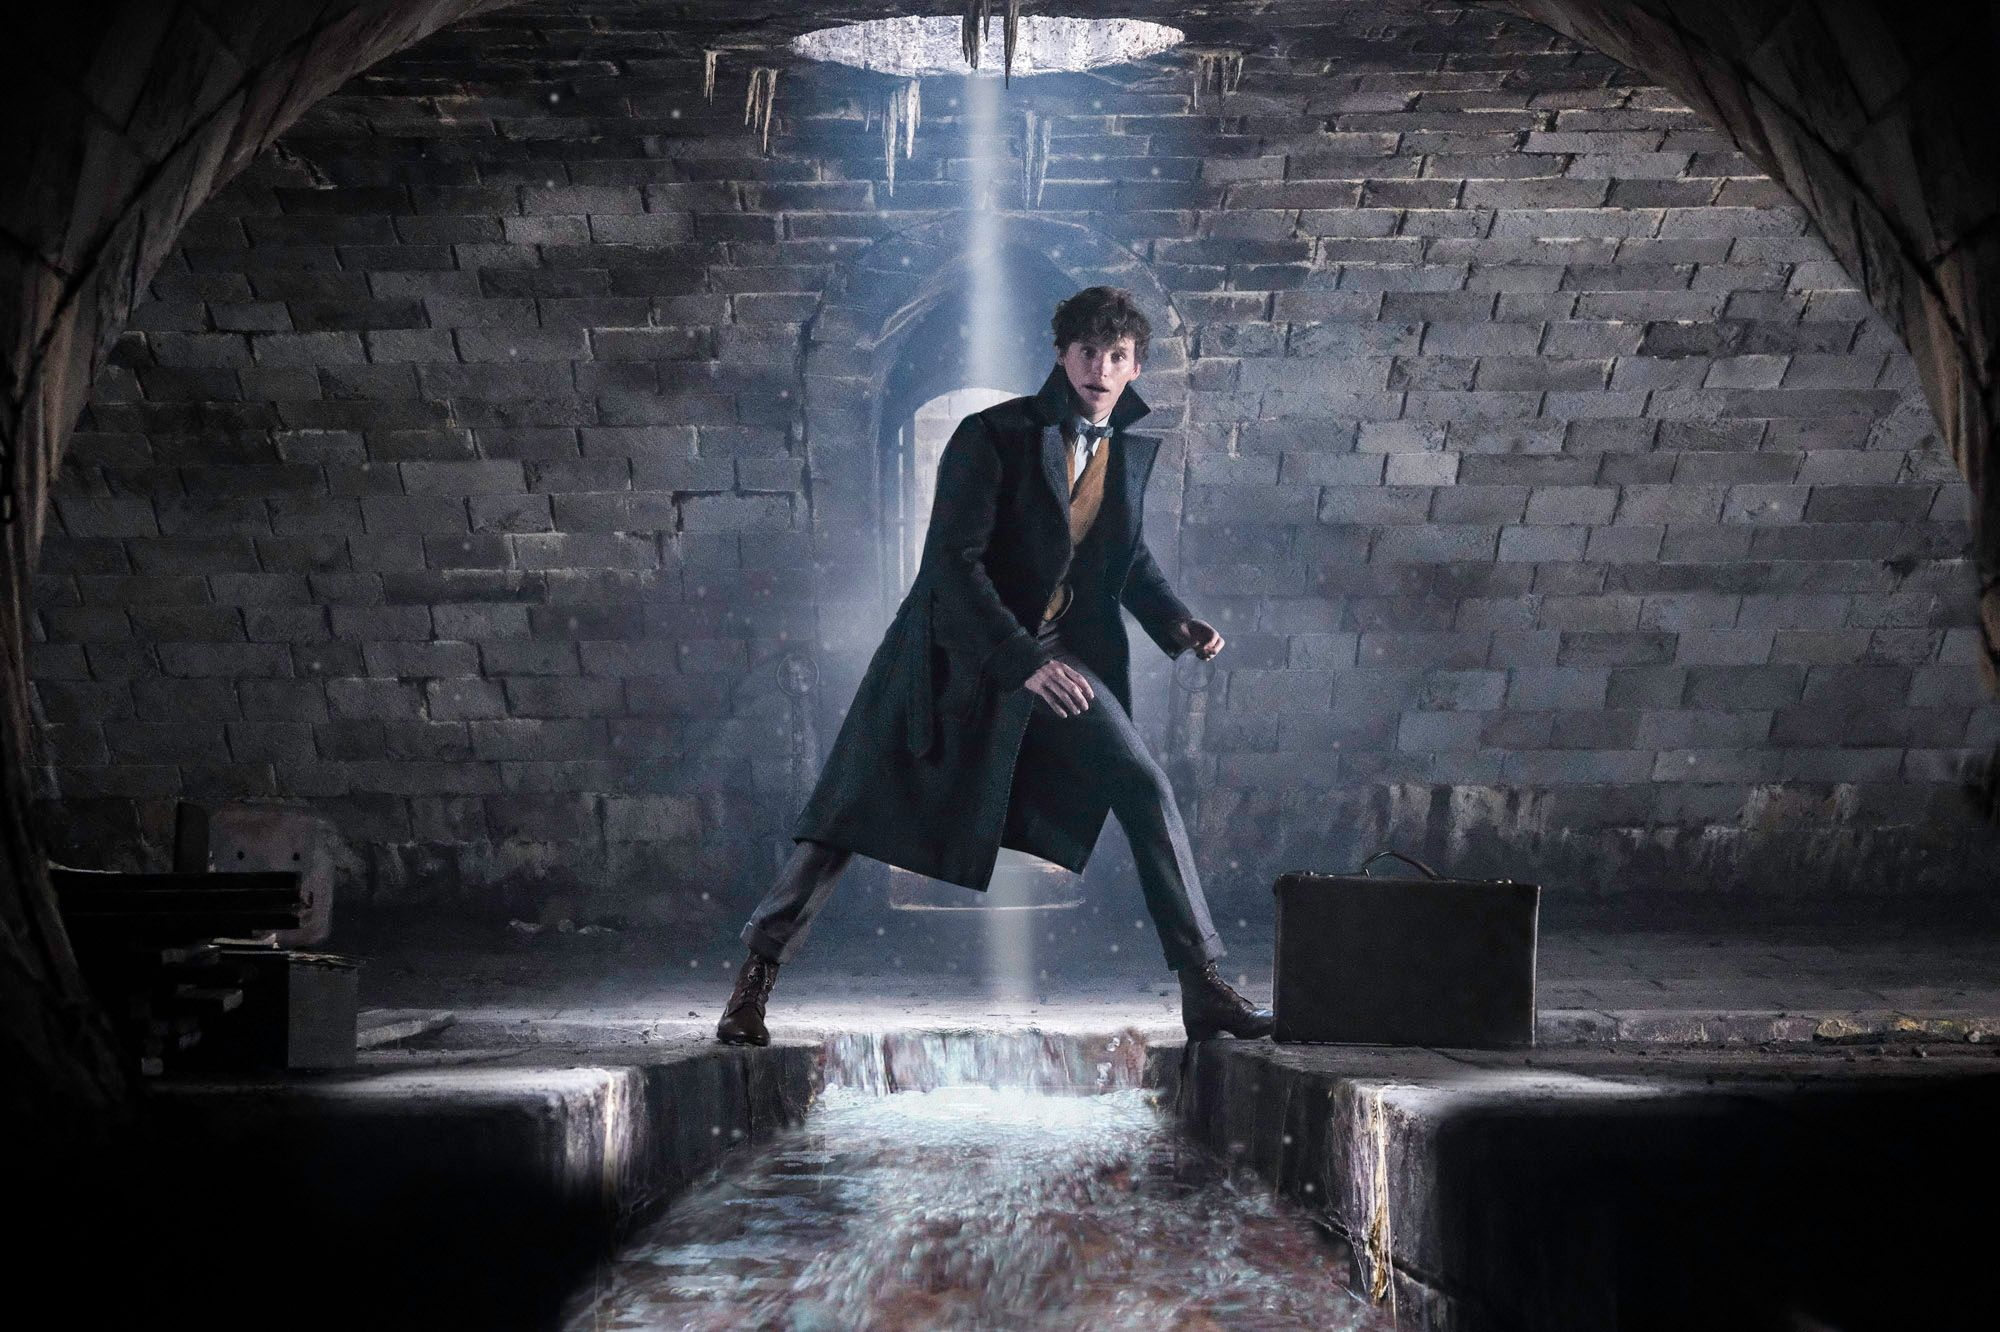 Fantastic Beasts scoop: All 5 movies will be set in different cities